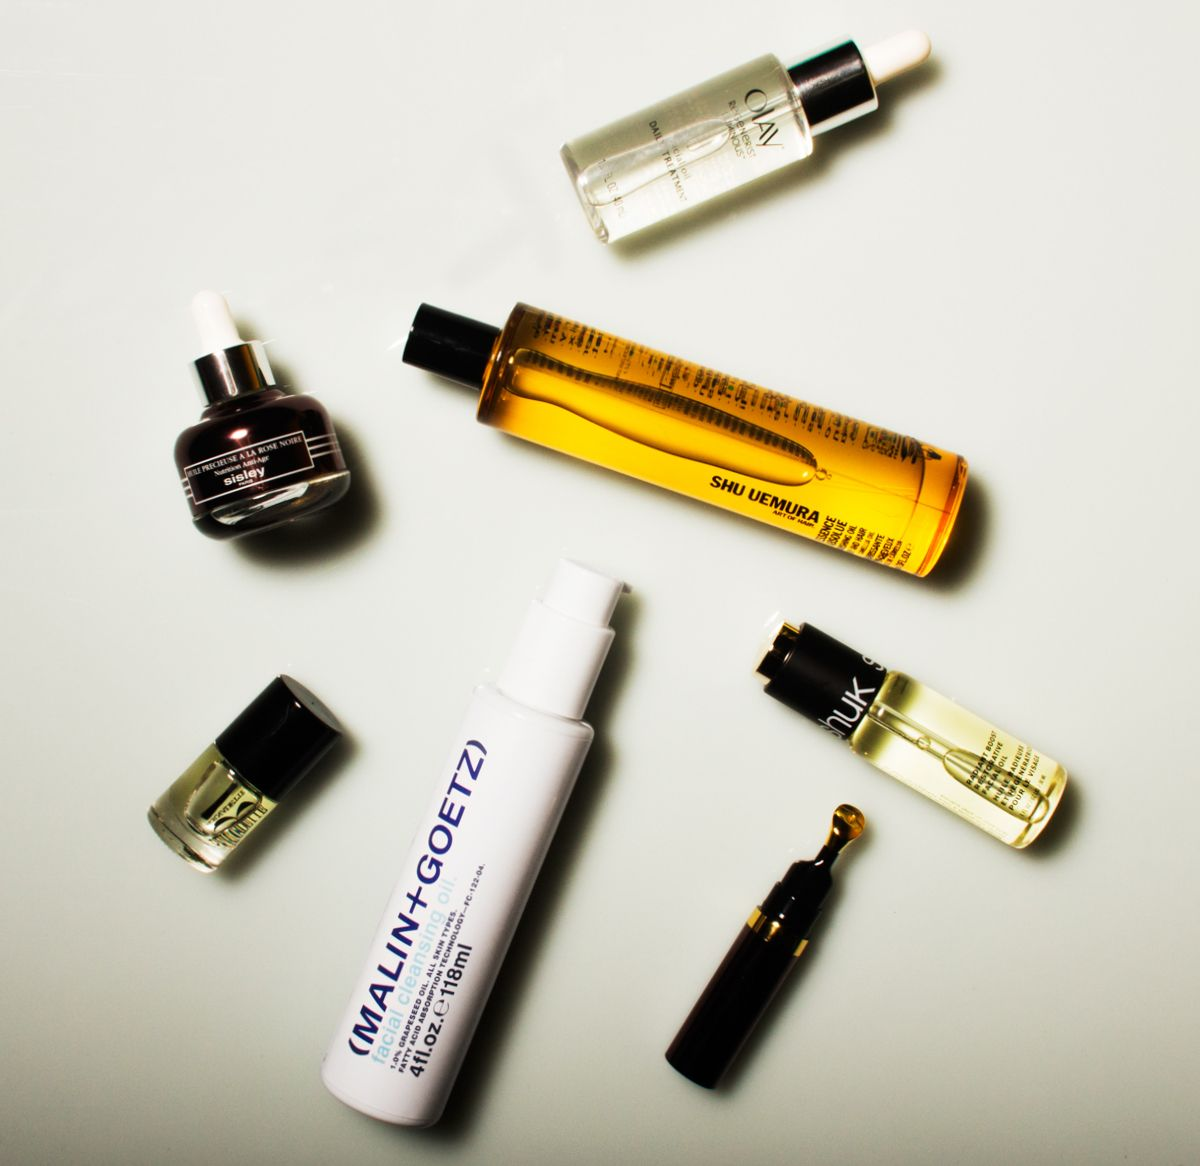 7 New Miracle Beauty Oils For Your Face, Body, And Nails